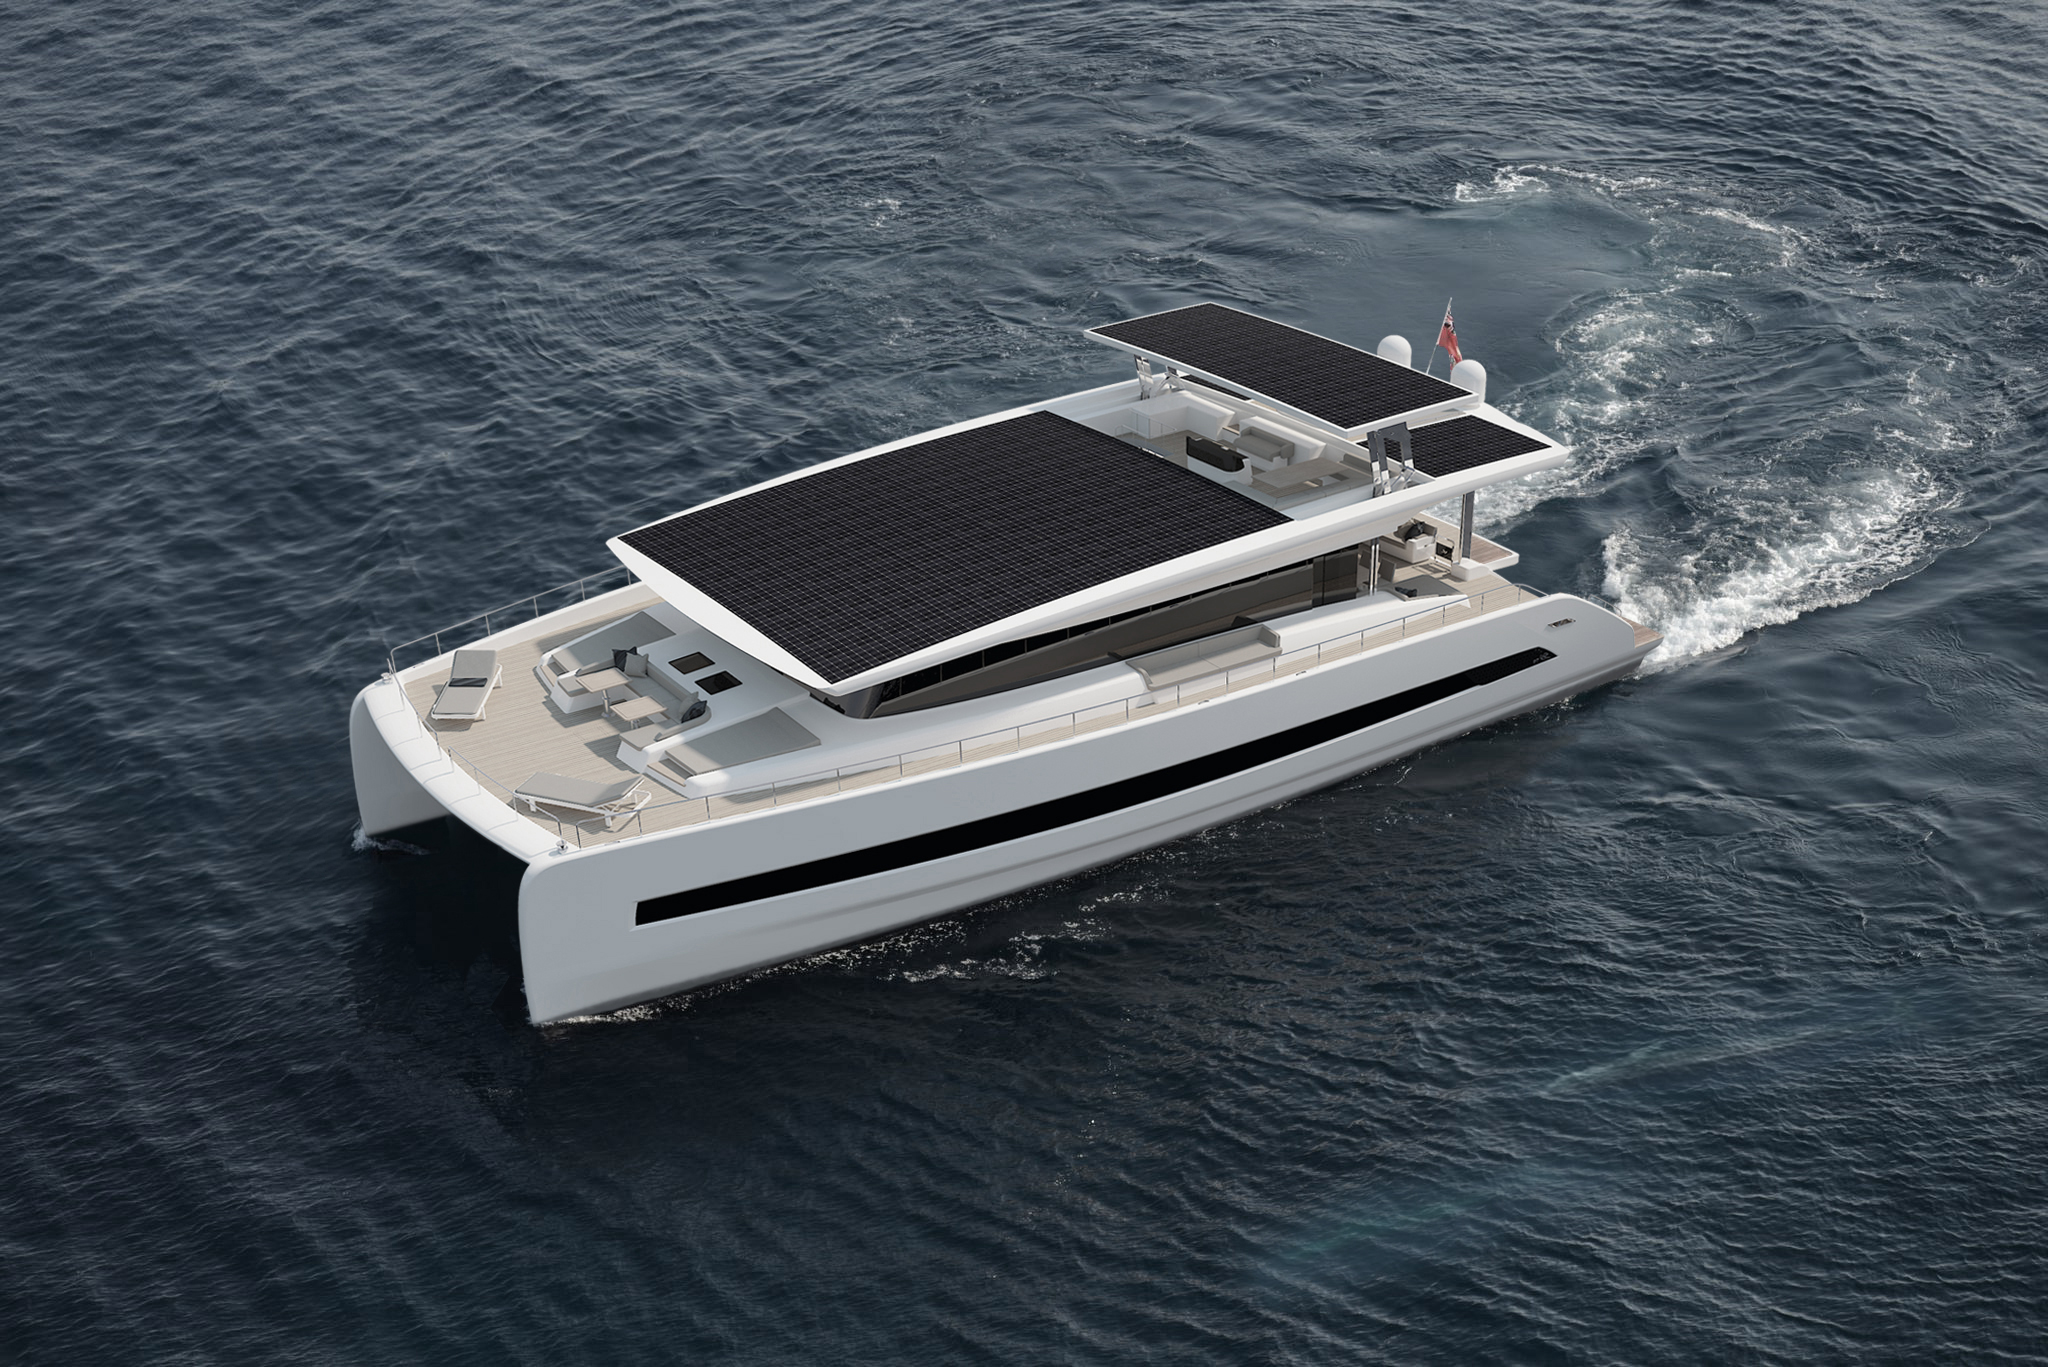 Silent-Yachts: A new breed of cruising yacht - Victron